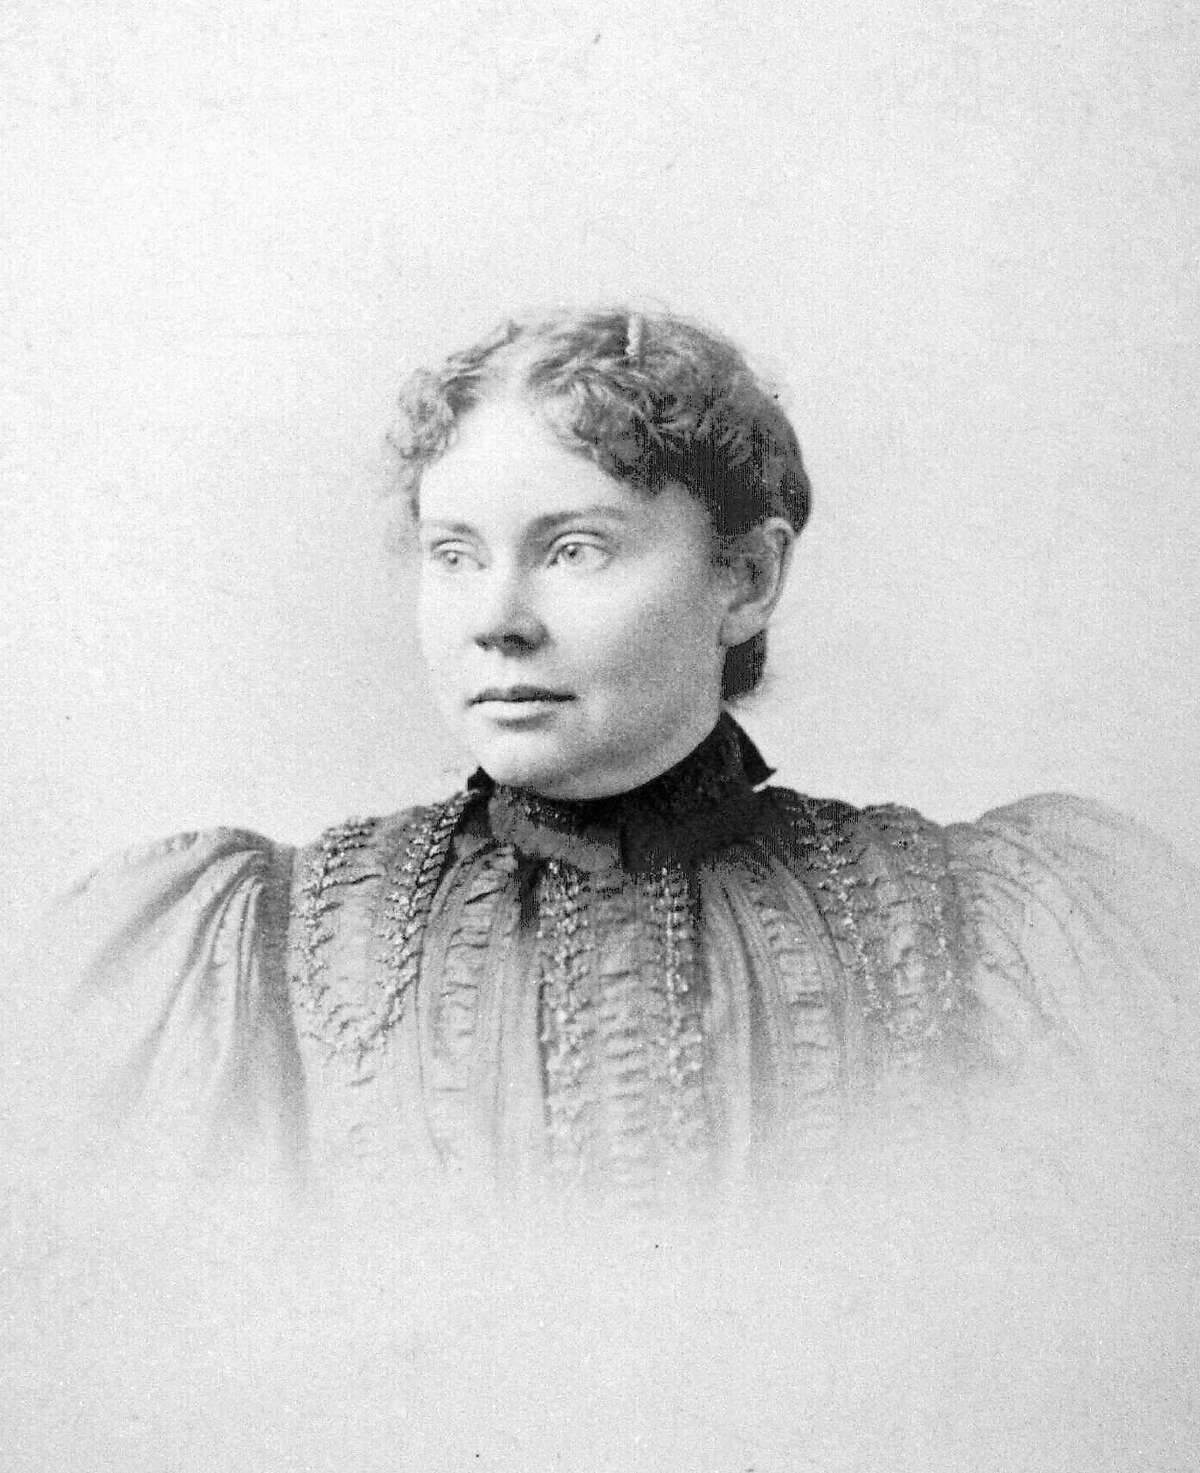 Lizzie Borden may have had trouble with the TSA